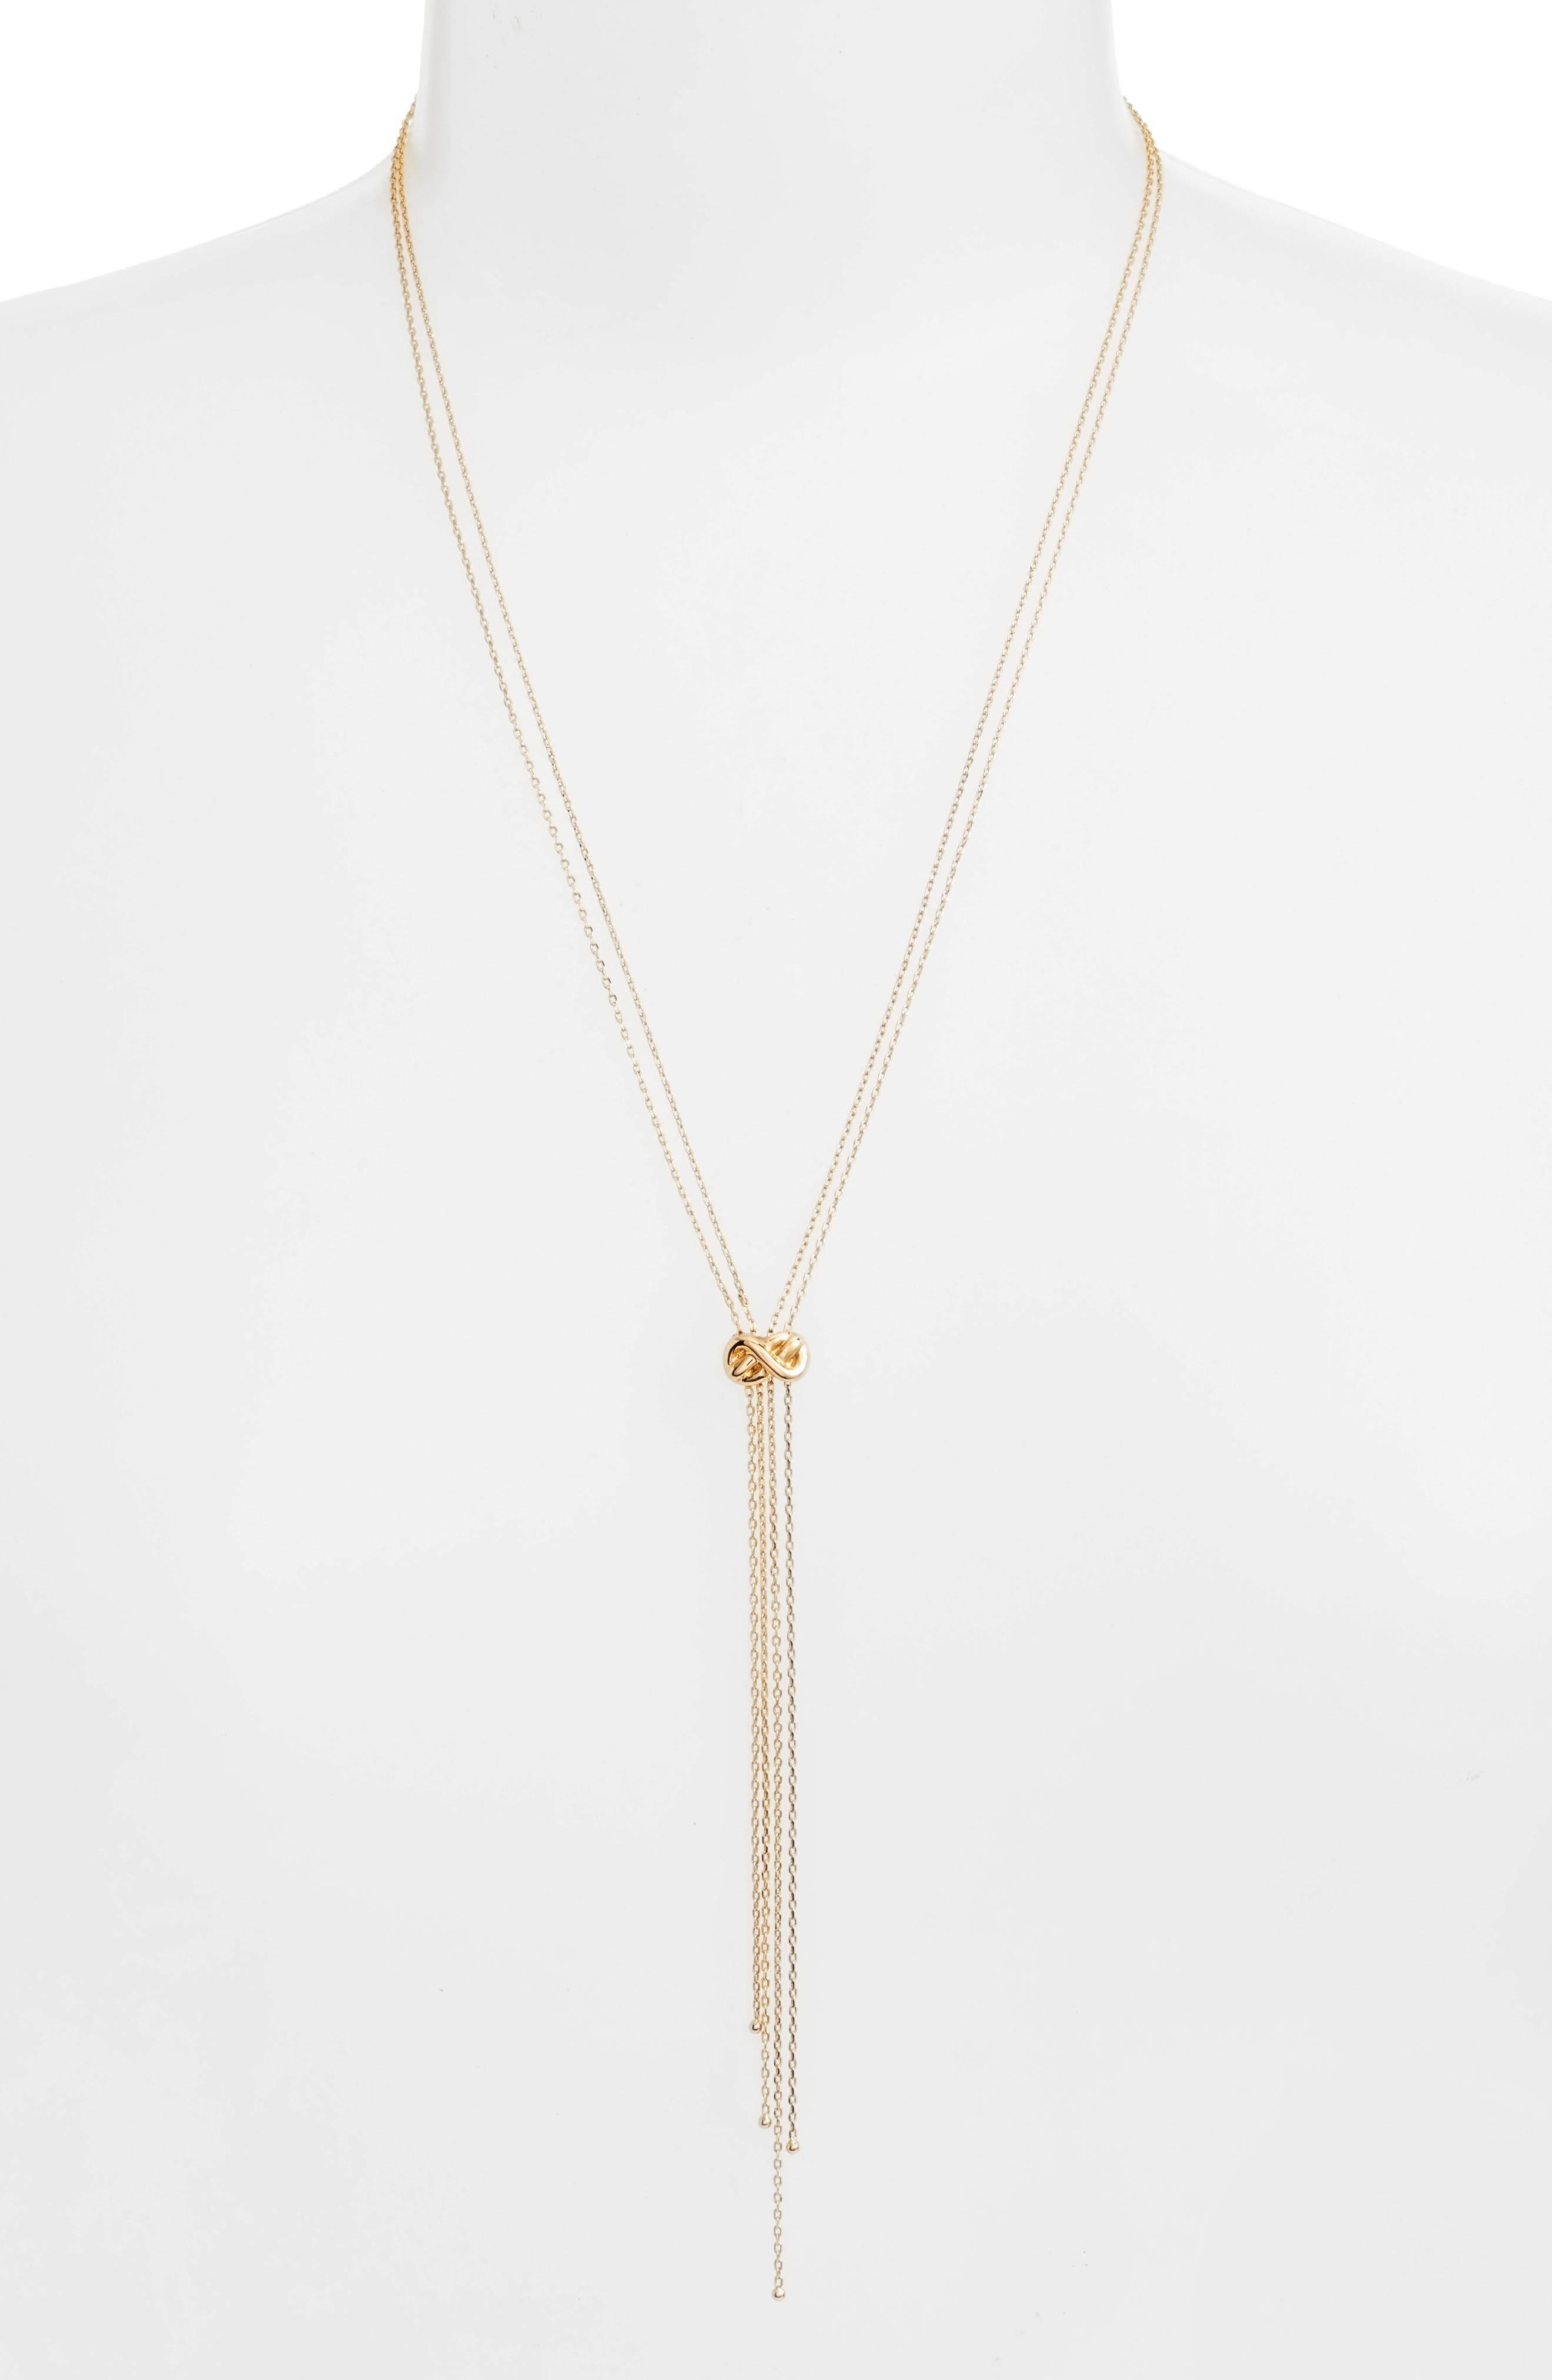 Jules Smith Cory Lariat Necklace